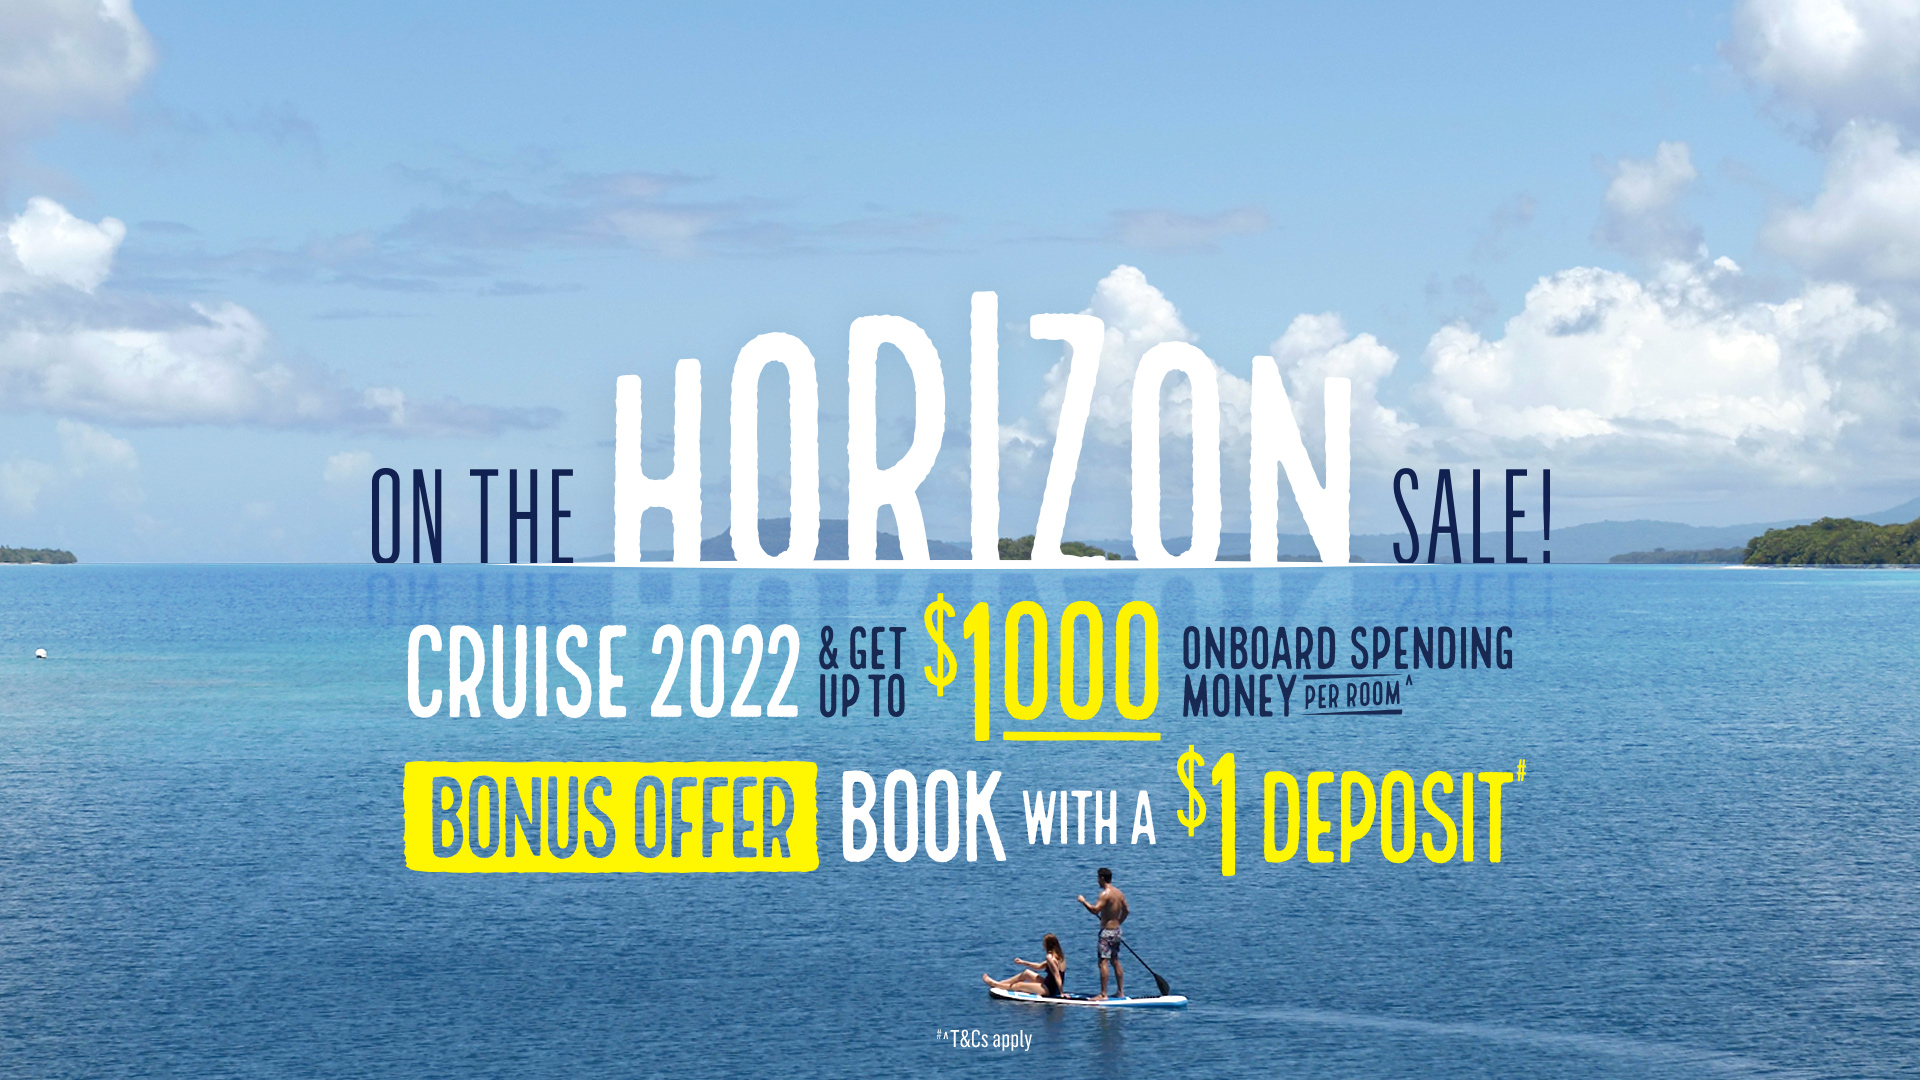 P&O Cruises On the Horizon Sale